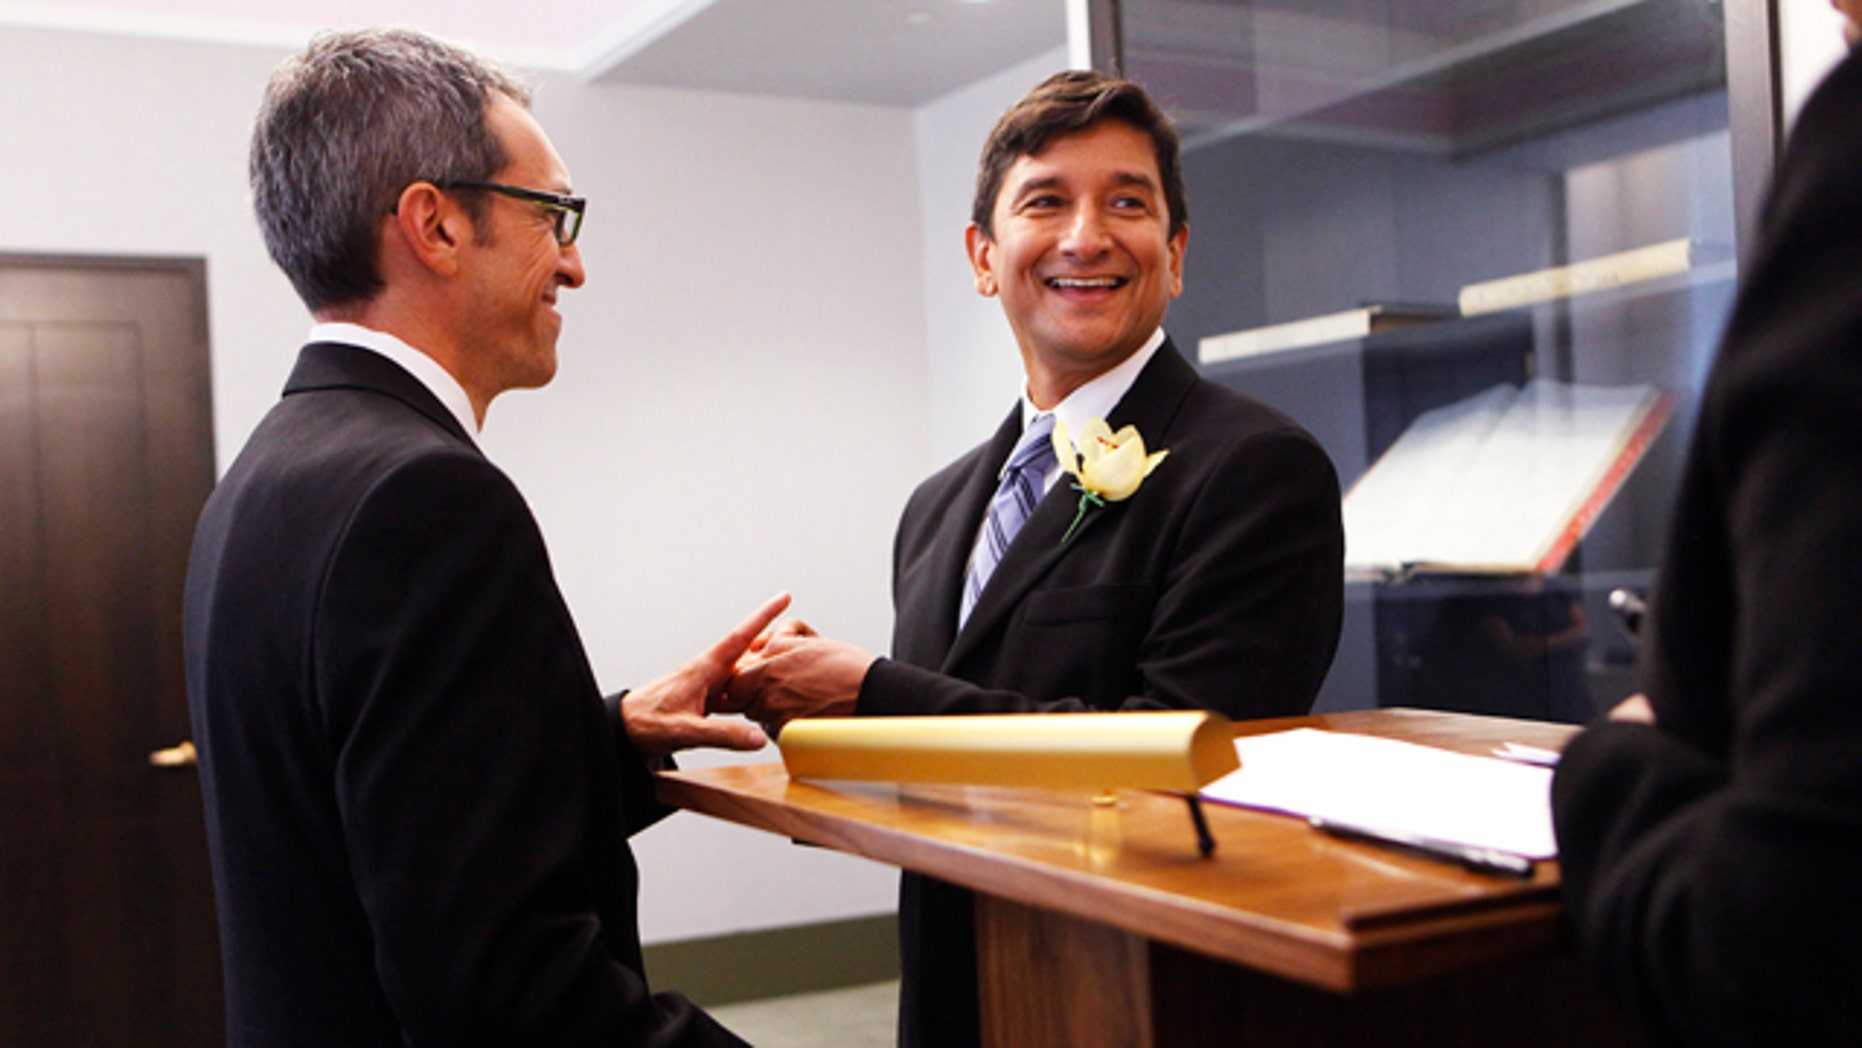 Same-sex couple Daniel Hernandez, 53, right, and Nevin Cohen, 48, exchange vows at the City Clerk's Office in New York on July 24, 2011, a month after Gov. Cuomo signed a state law legalizing gay marriage. (AP Photo/Shannon Stapleton, Pool)